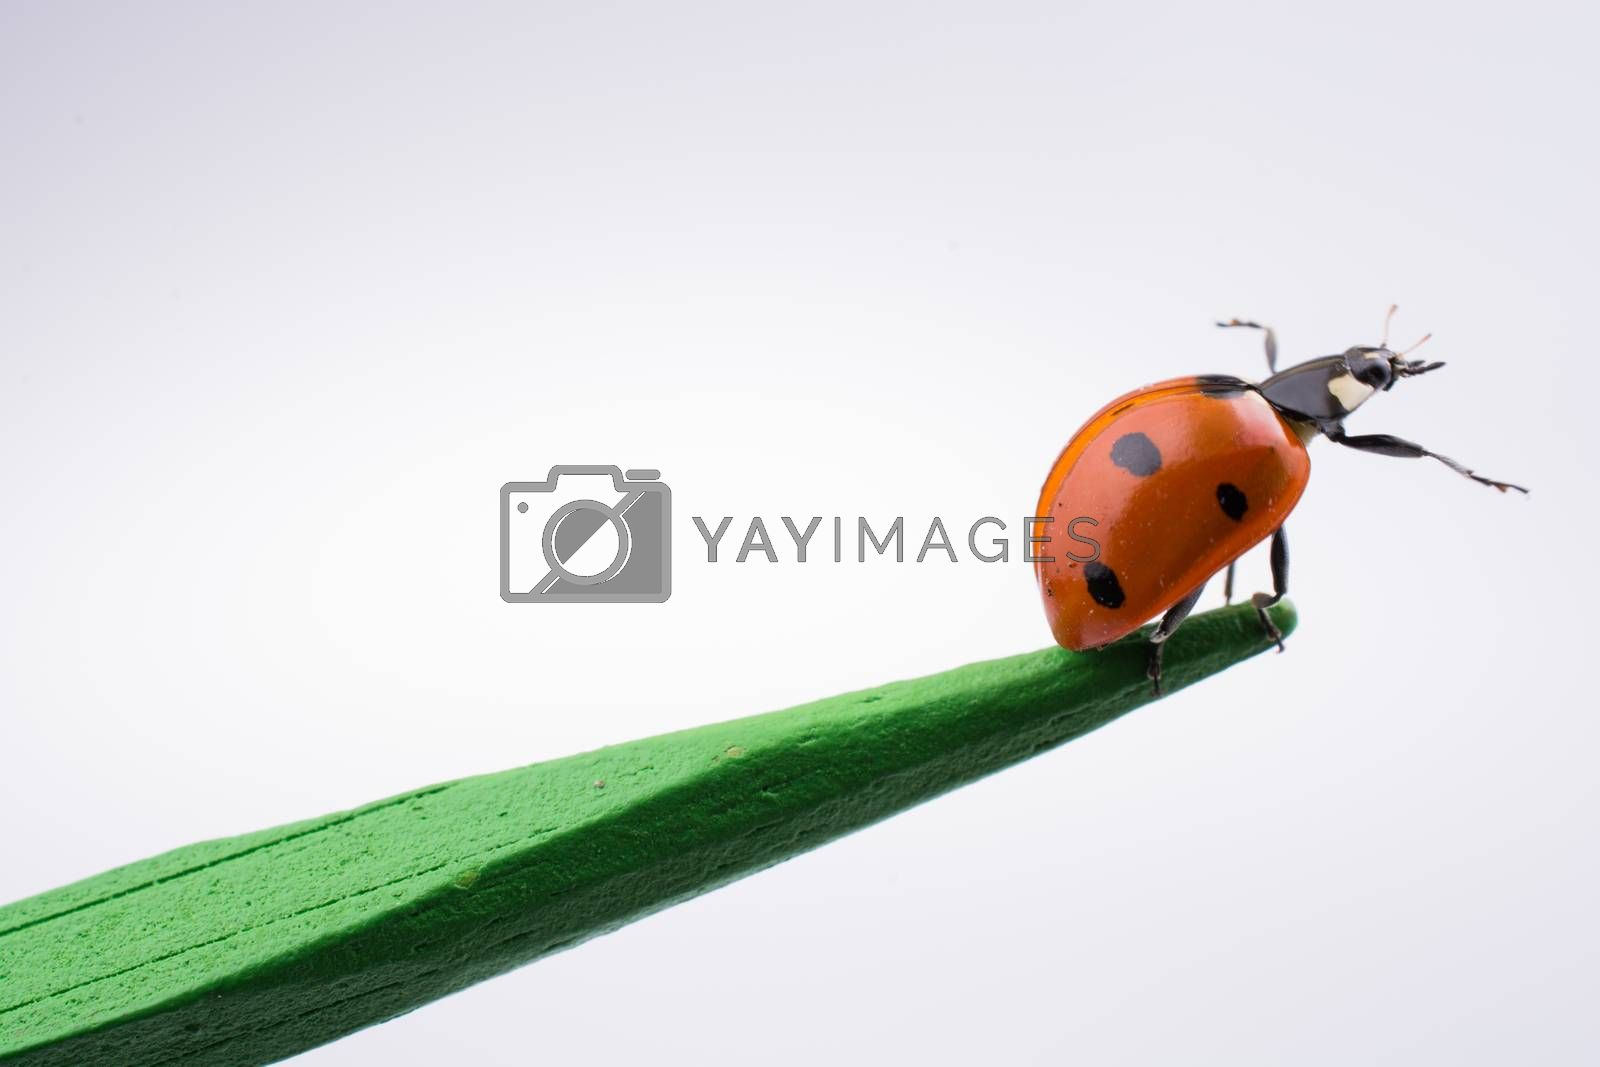 Beautiful photo of red ladybug walking on a wooden stick